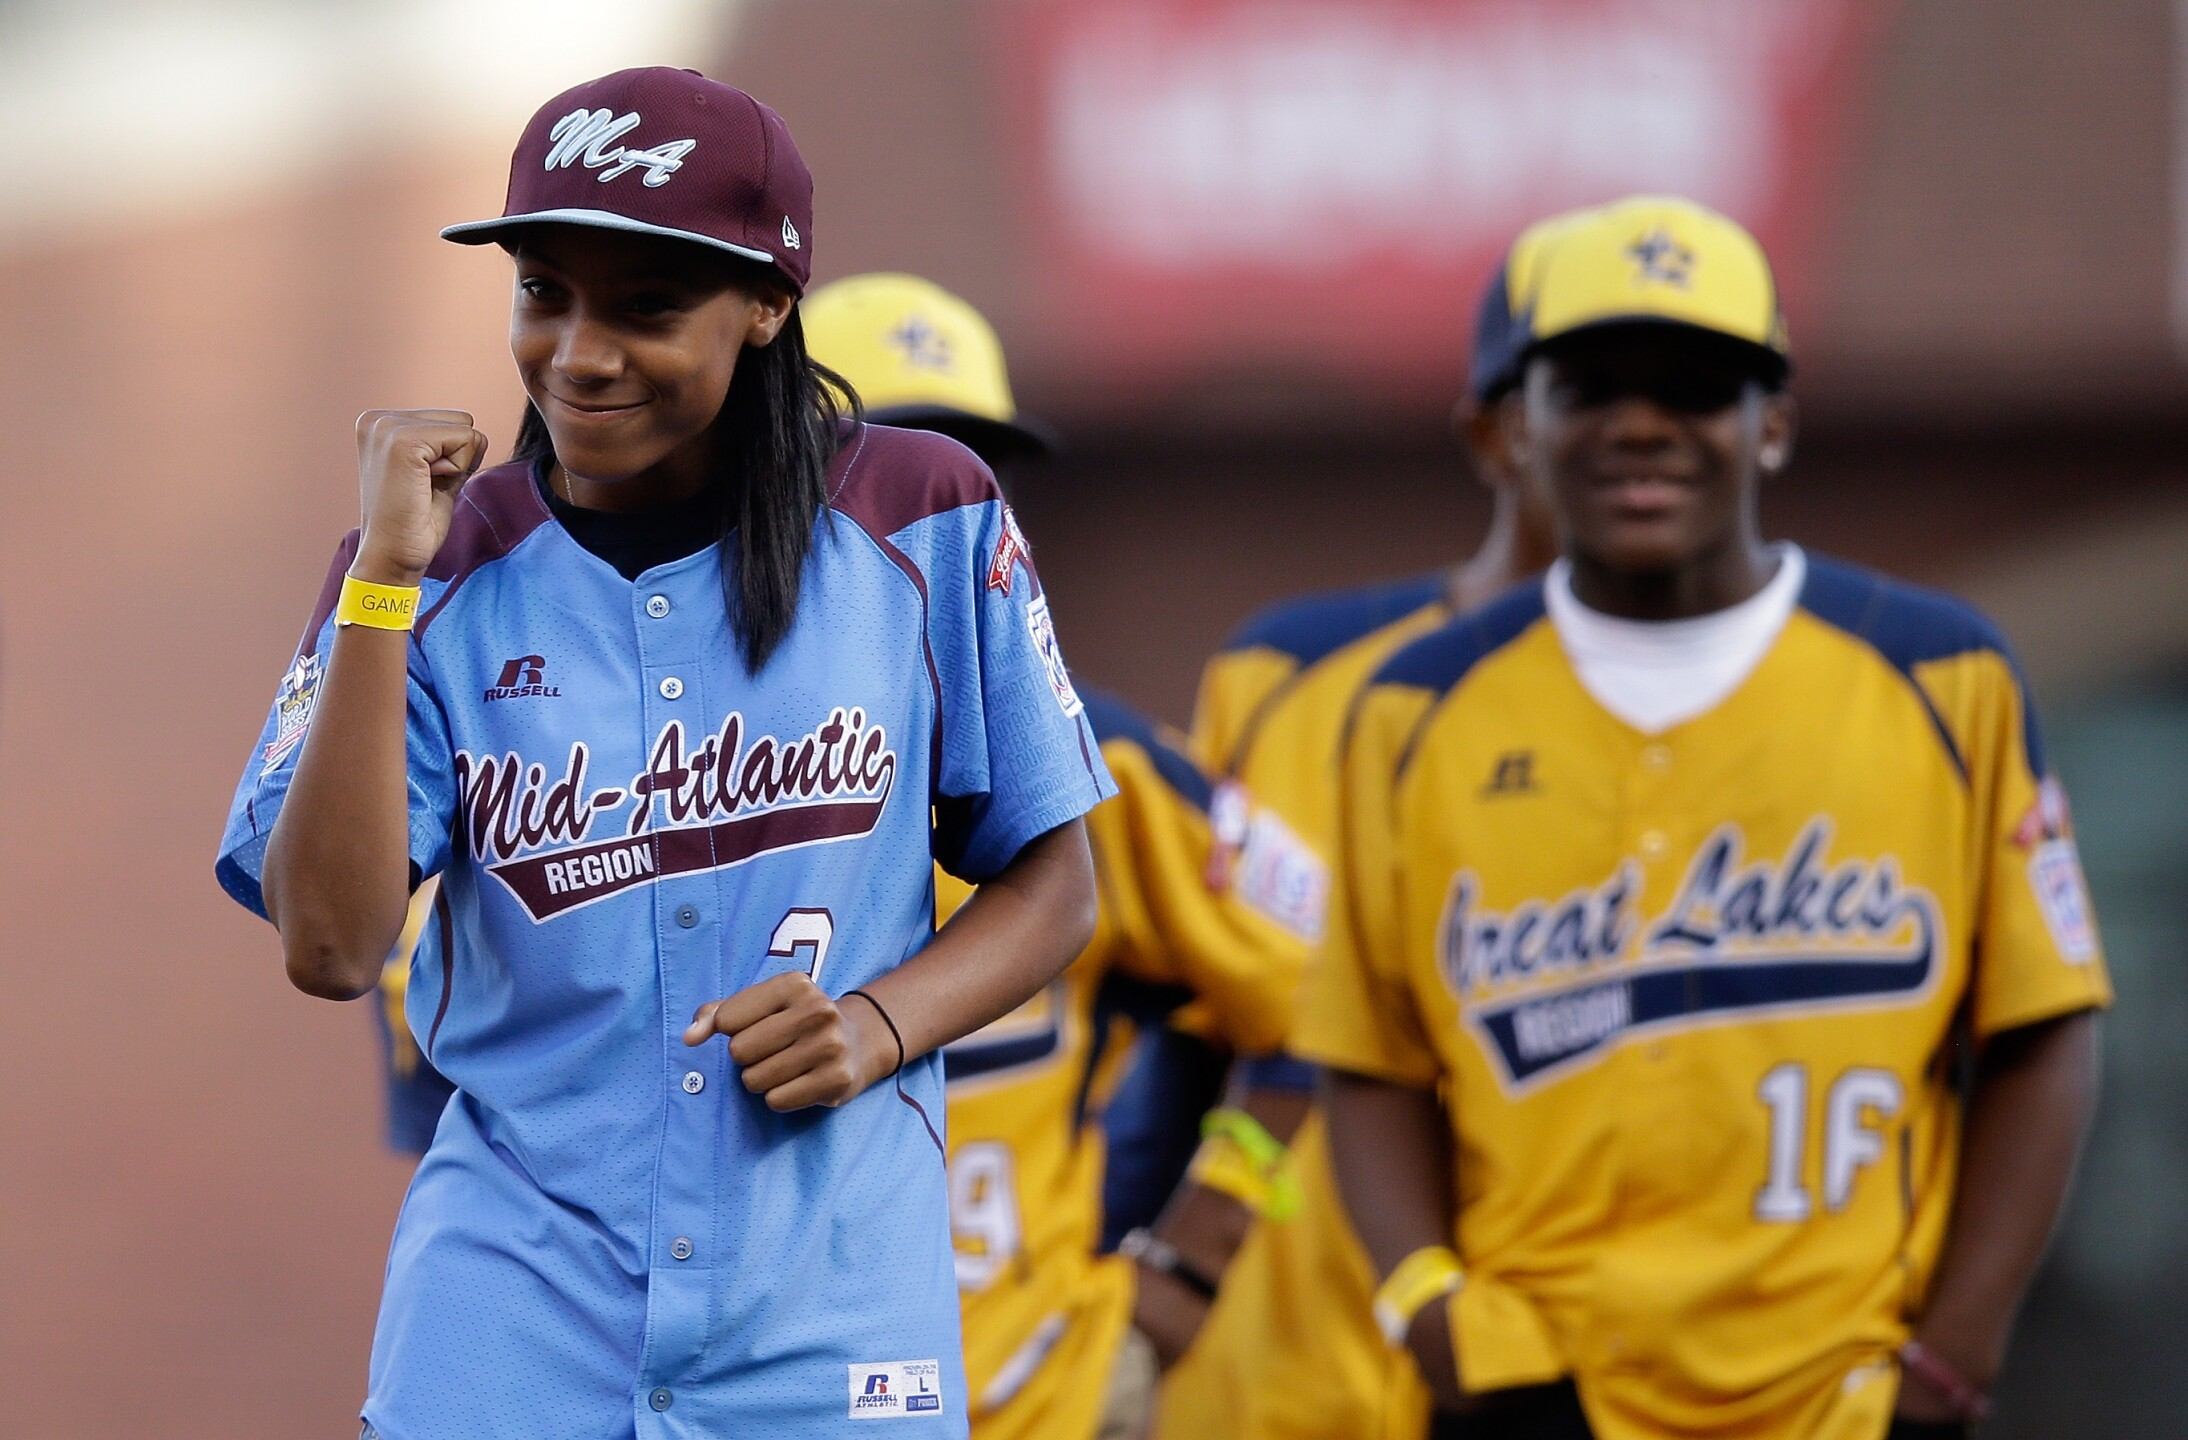 Photos: Little League World Series icon Mo'ne Davis to play softball at Hampton University